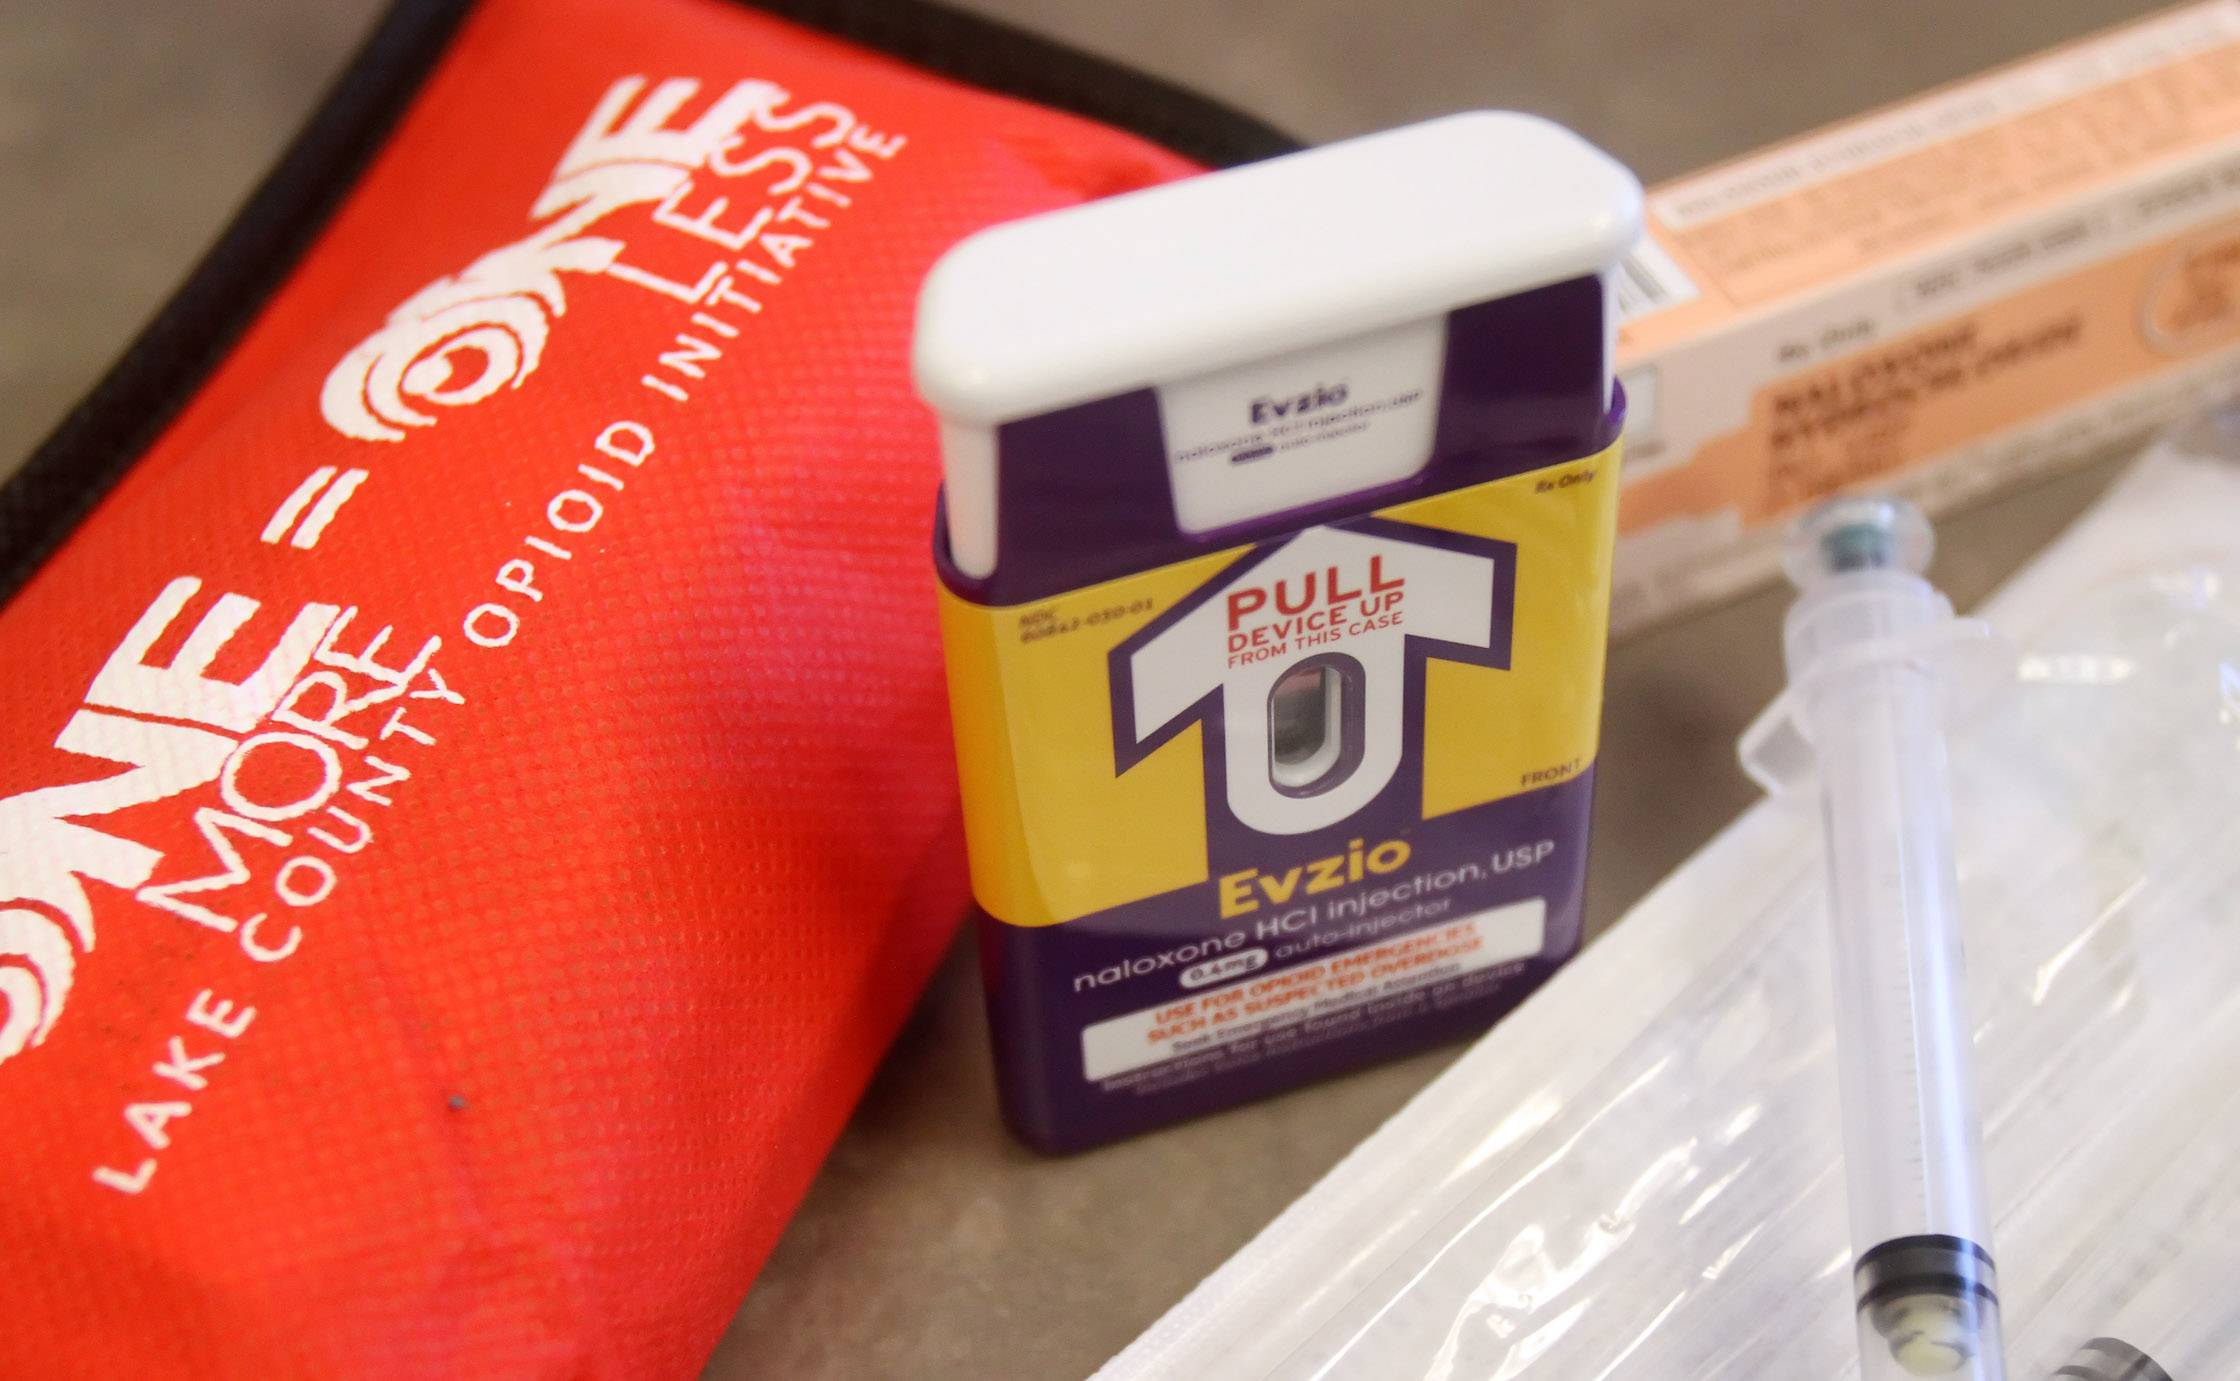 Some Kane County area police departments have already run out of the opioid overdose antidote drug called Narcan that officers are now all trained to use.